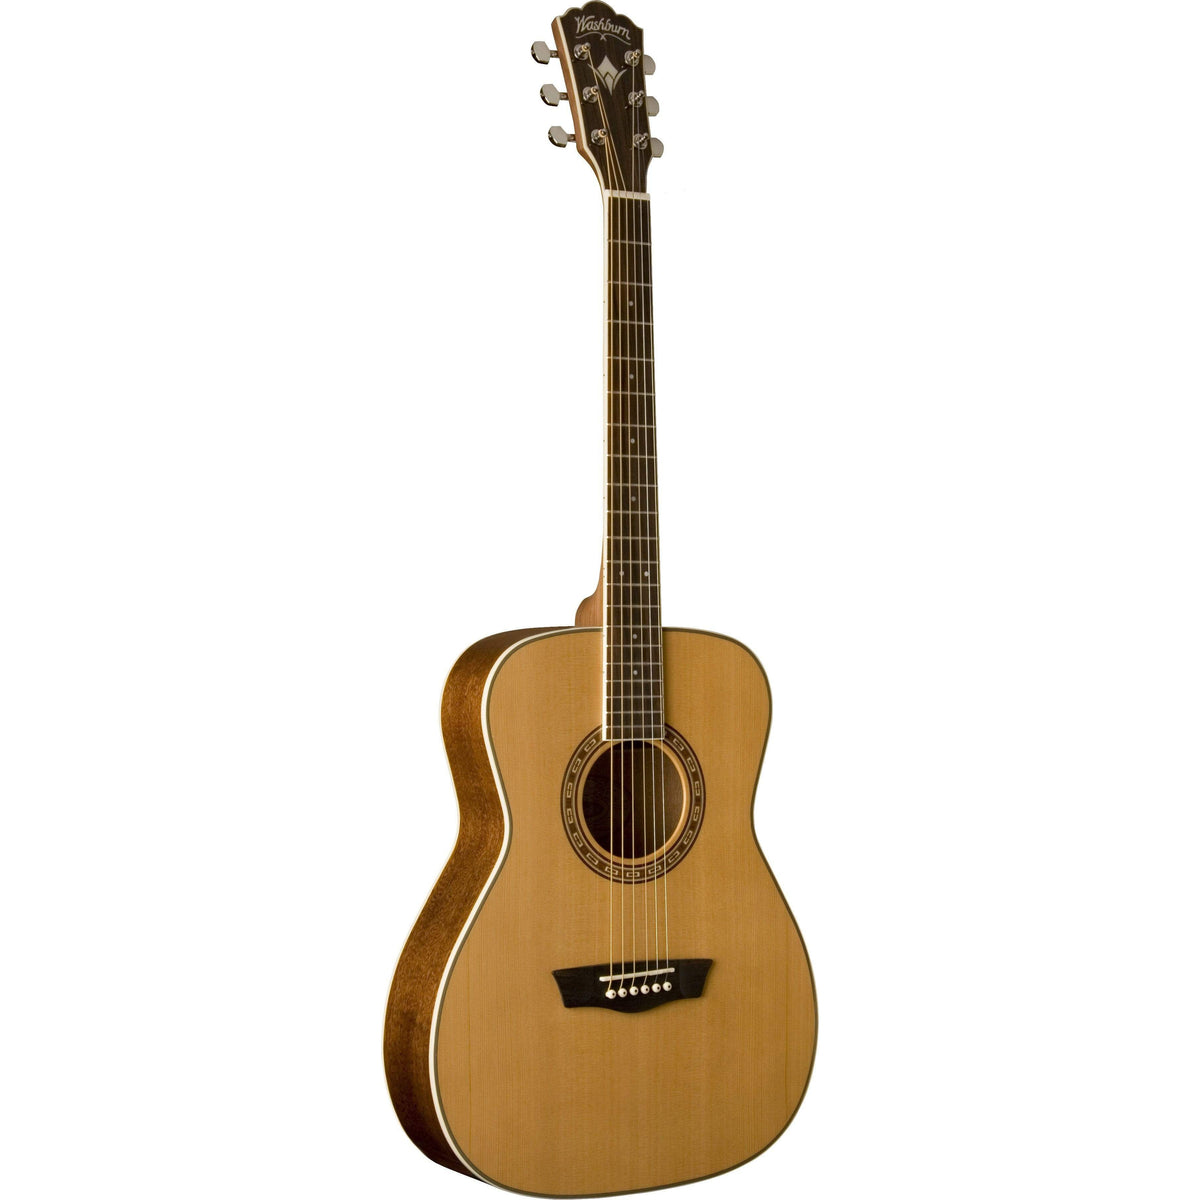 Washburn Guitars Acoustic Guitar Washburn WF11S Acoustic Guitar